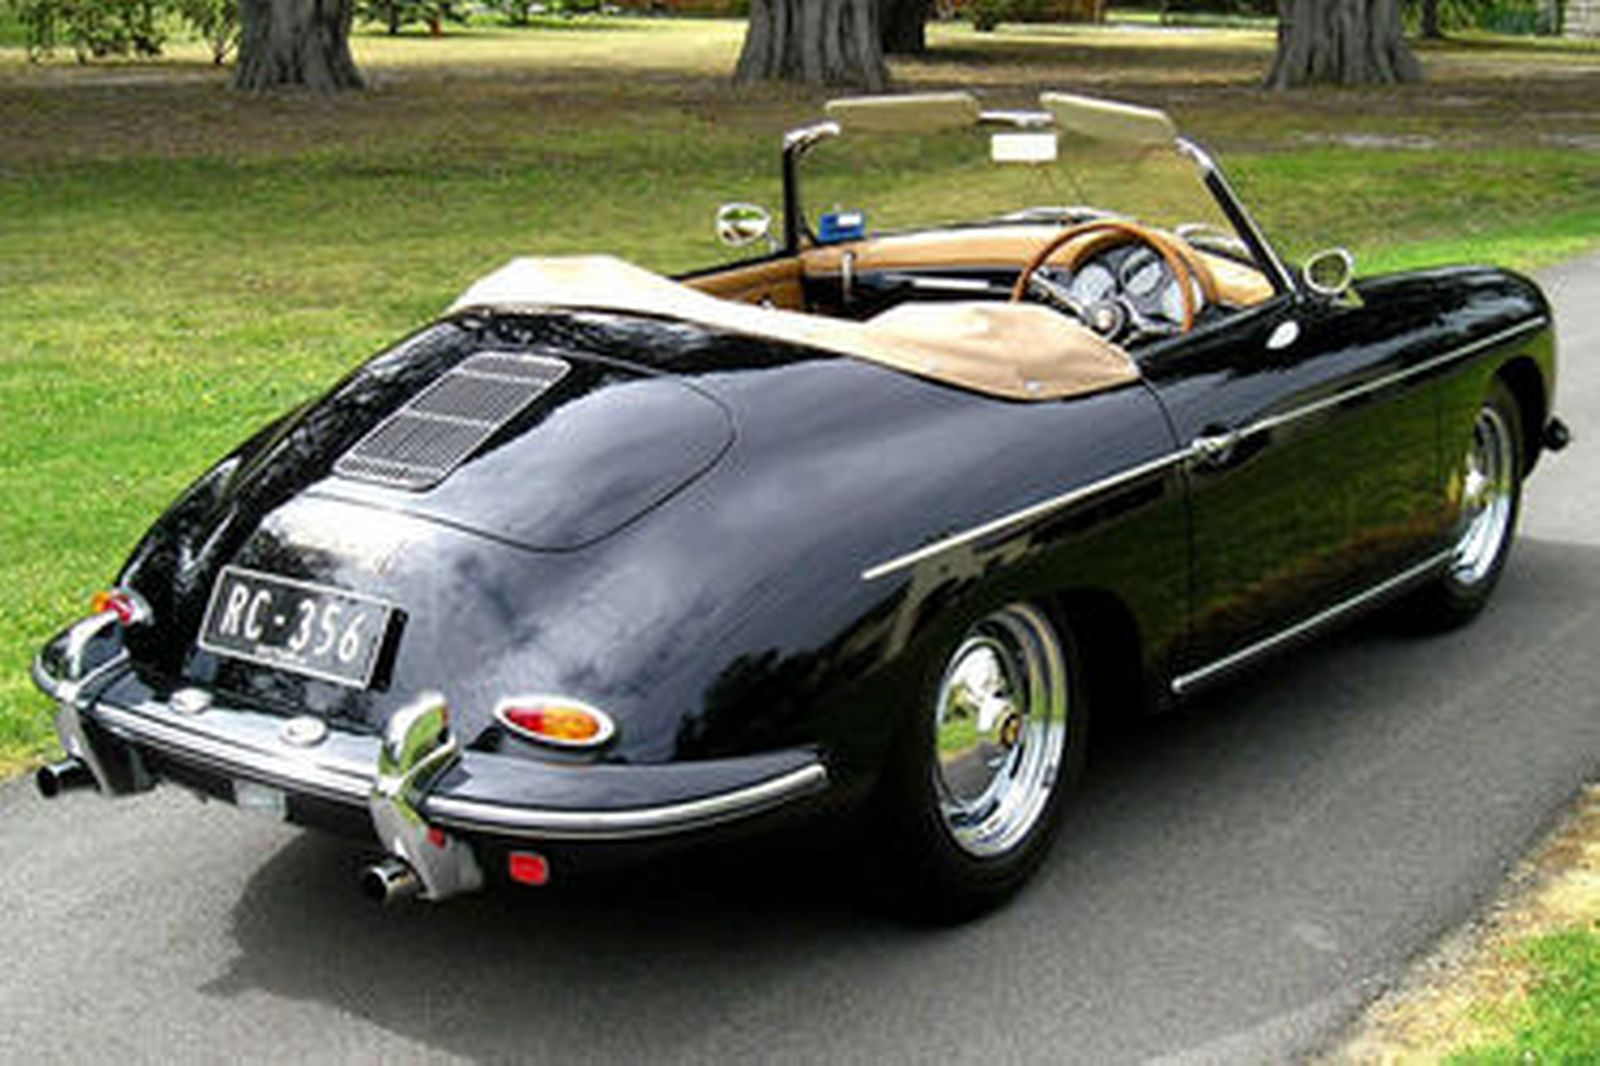 Porsche 356b Super 90 Sold Porsche Roadster Auctions Lot